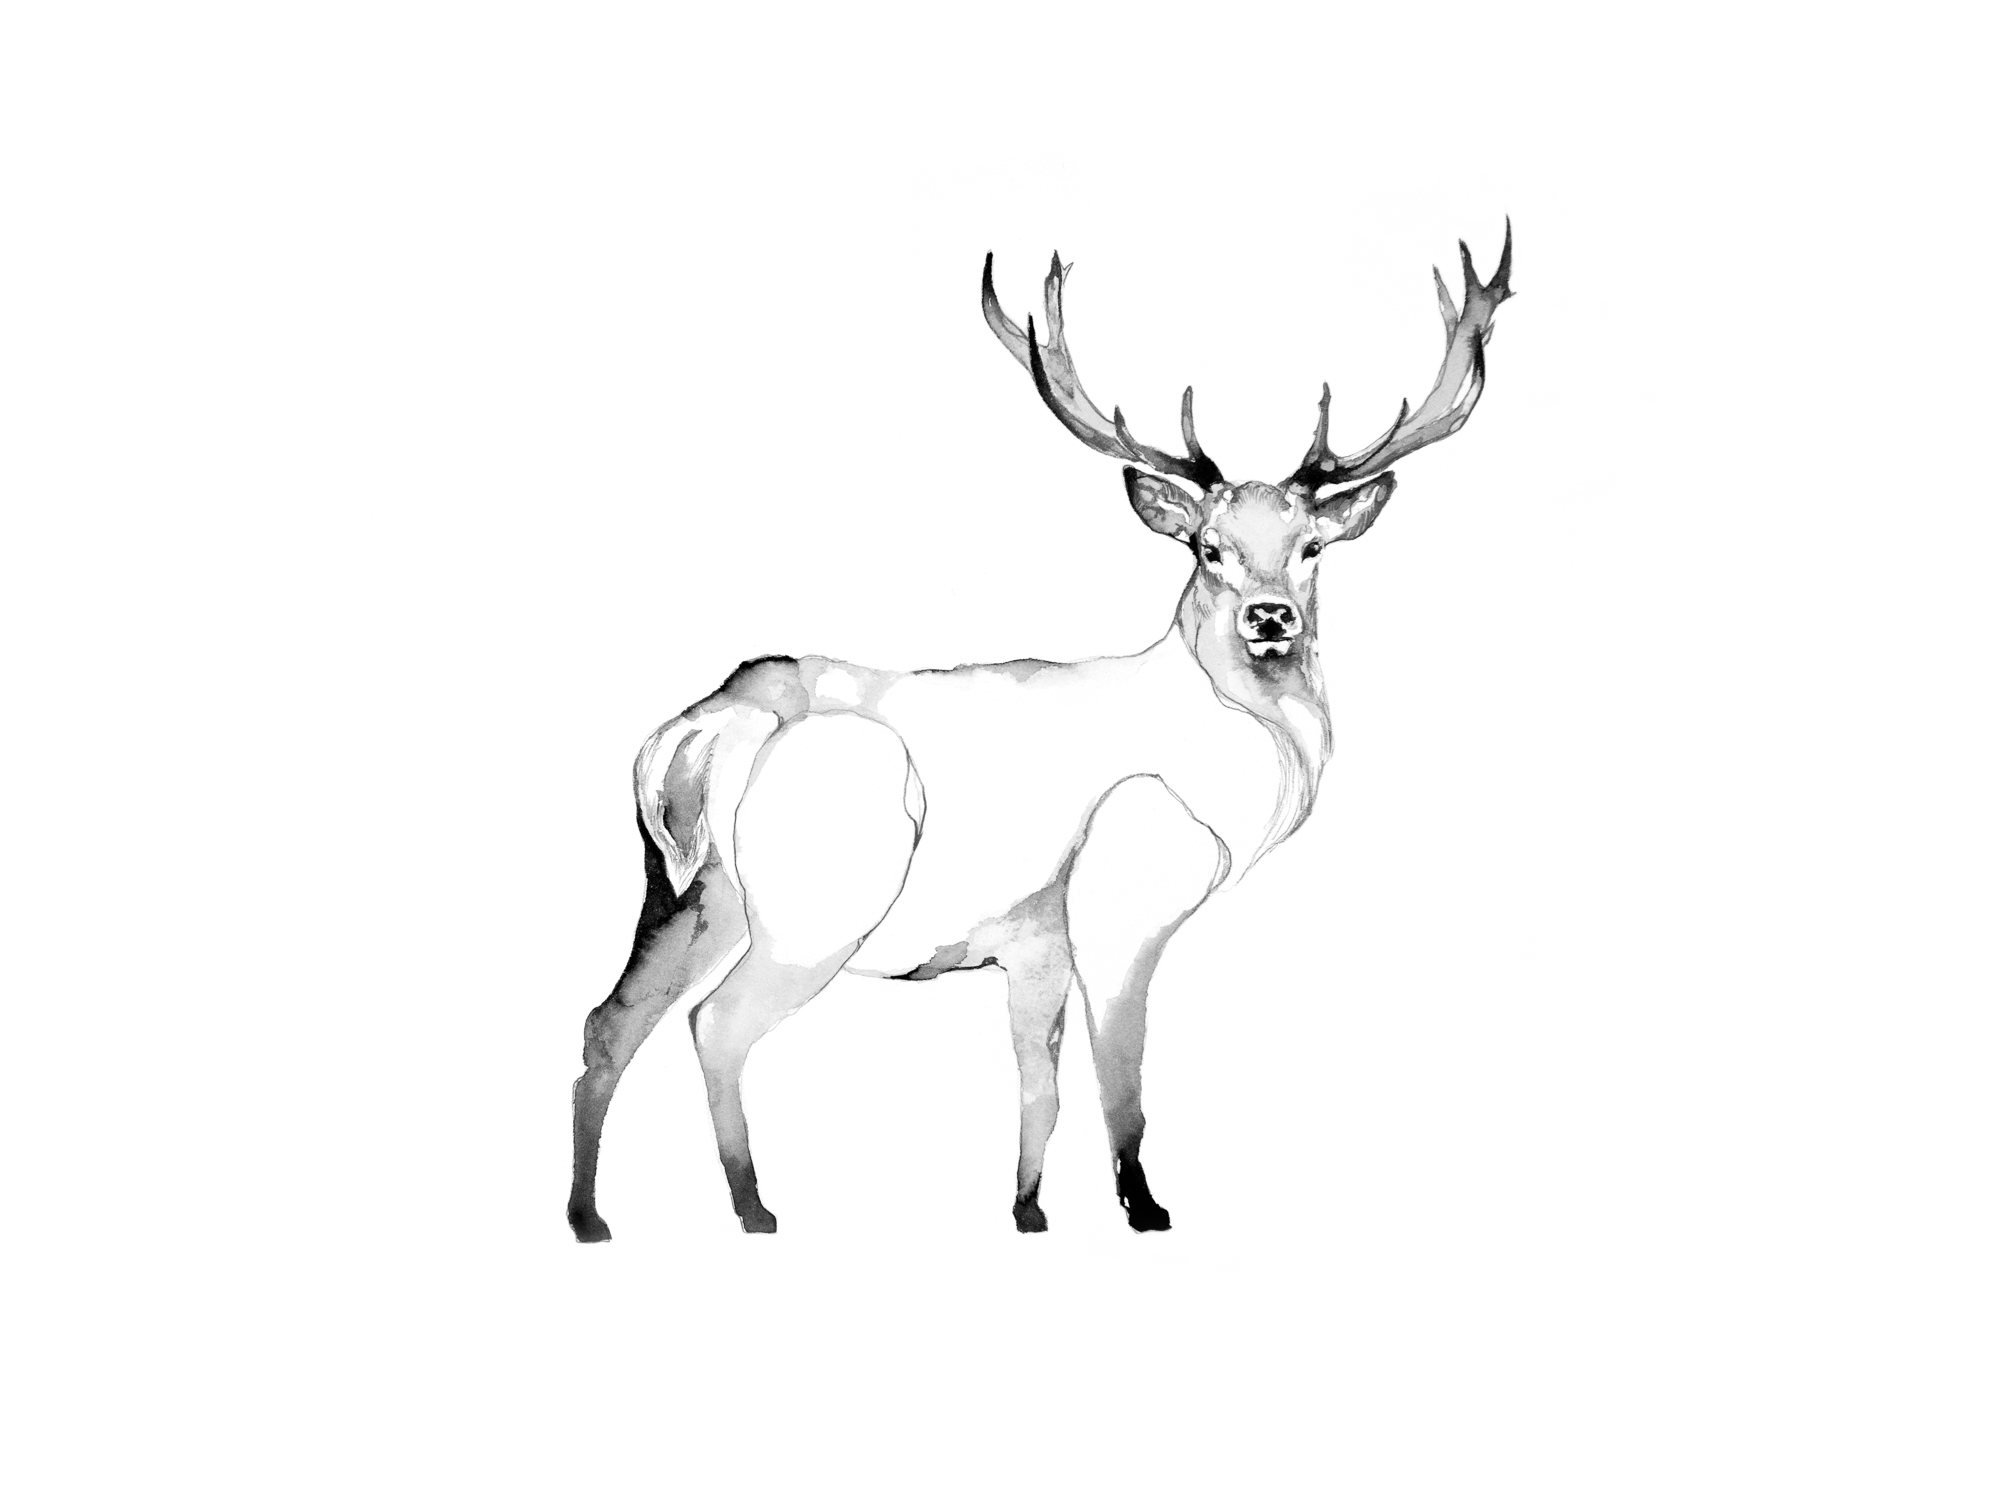 2-Bec_Kilpatrick_Illustration_Antlers_WingsELK